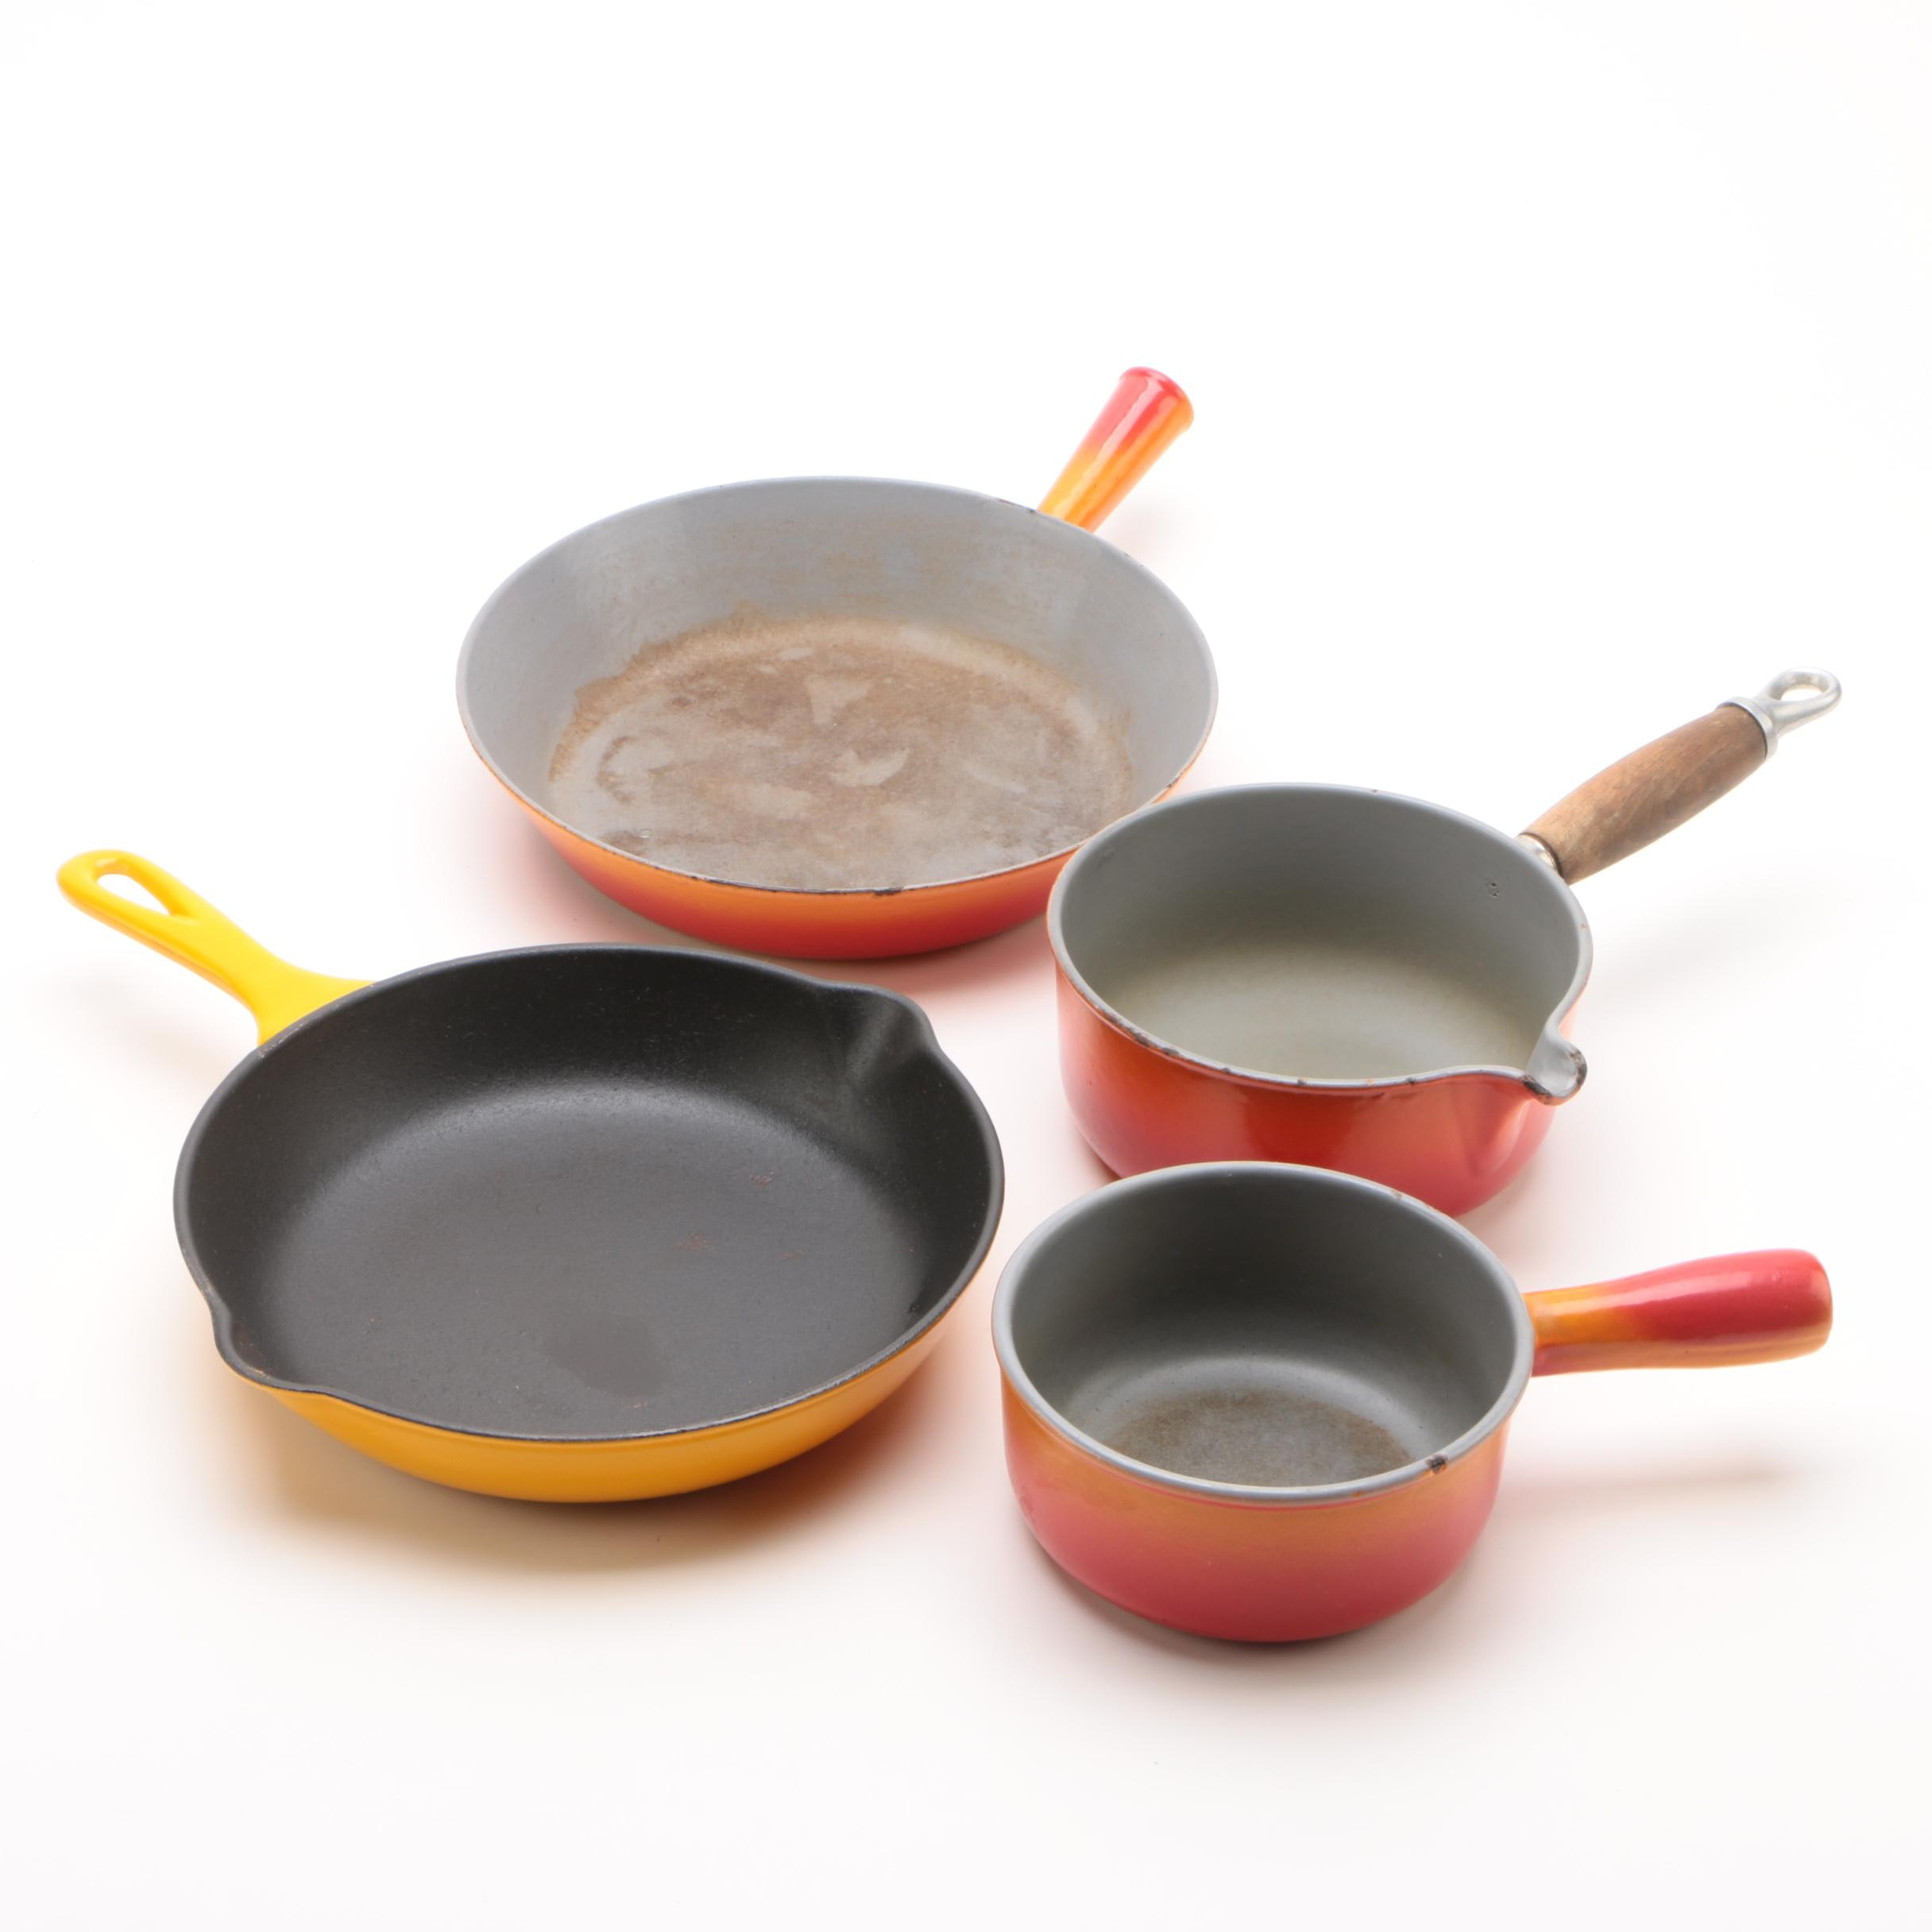 Enameled Skillets and Sauce Pans including Le Creuset